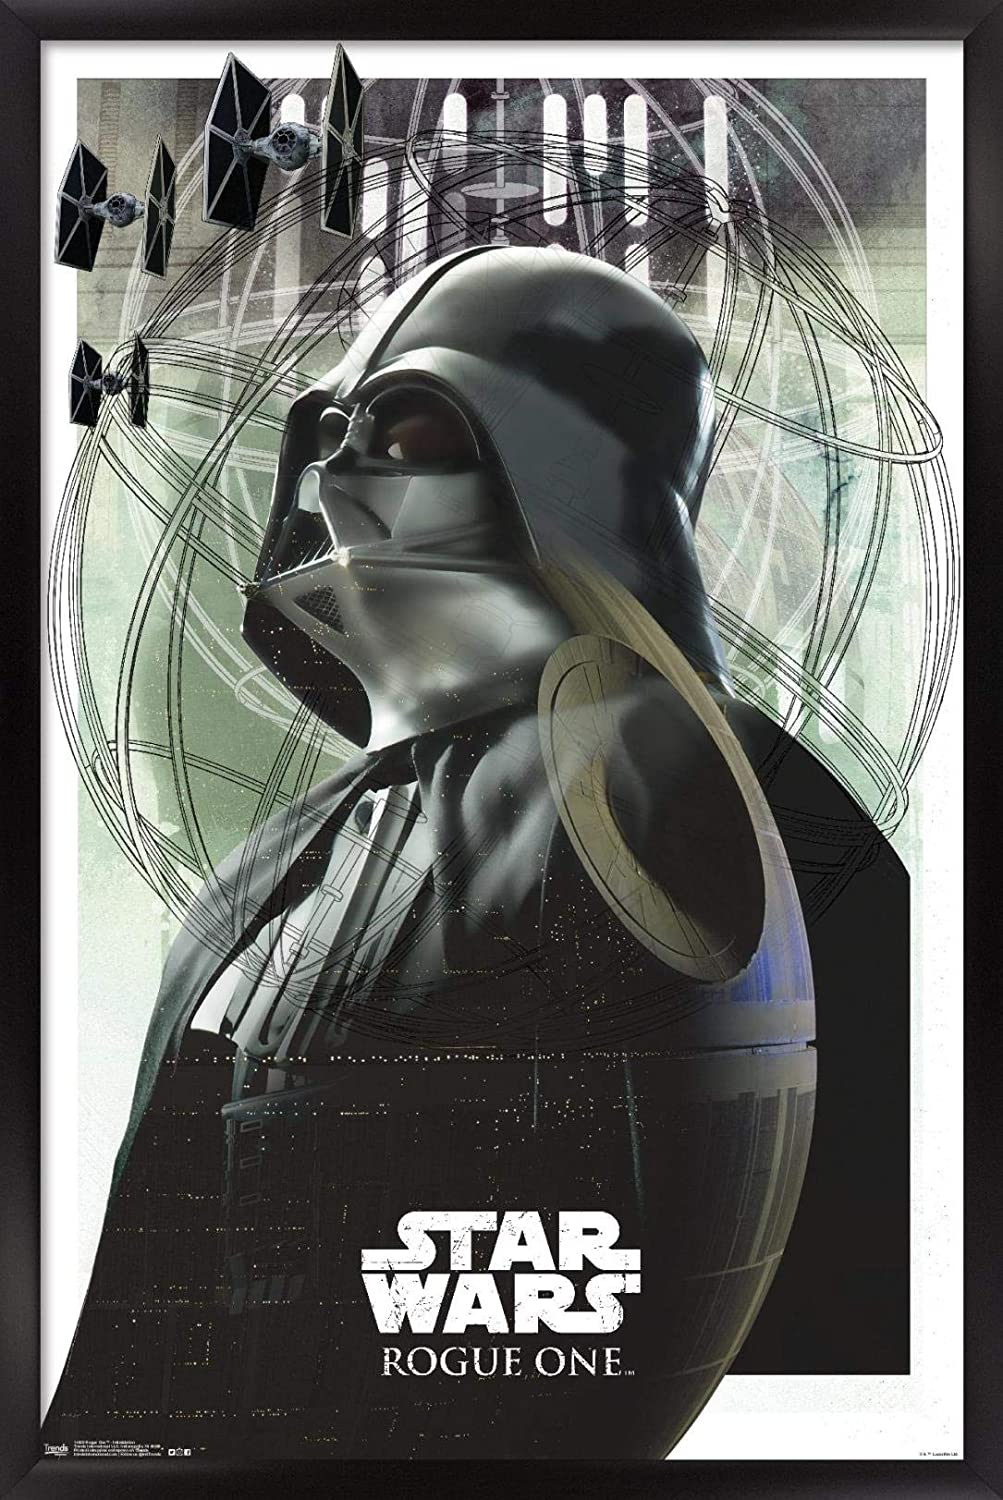 Trends Special price for a limited time International Elegant Wall Poster Star Wars One Rogue Intimidatio